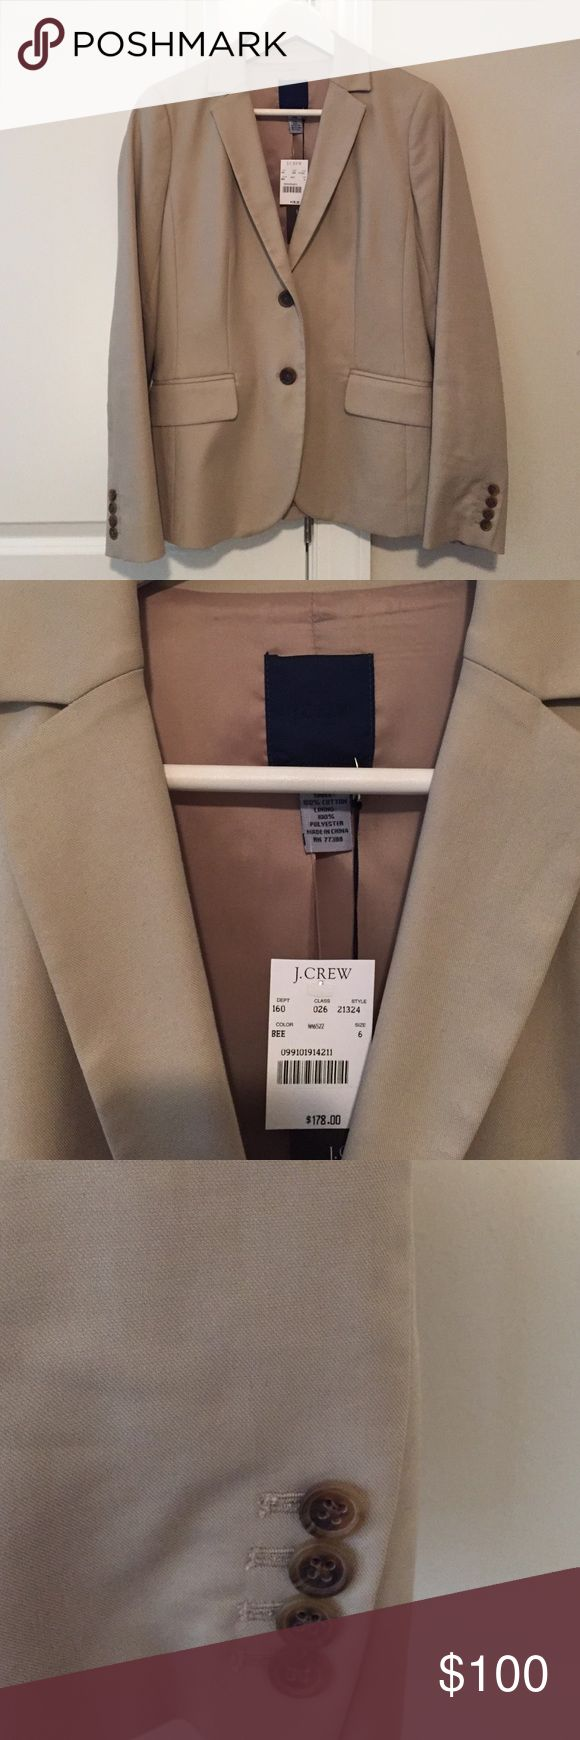 NWT J Crew beige jacket - size 6 Stylish ladies beige jacket. Perfect with jeans or trousers. New with tag! Measures 25 inches from shoulder to hem. J. Crew Jackets & Coats Blazers